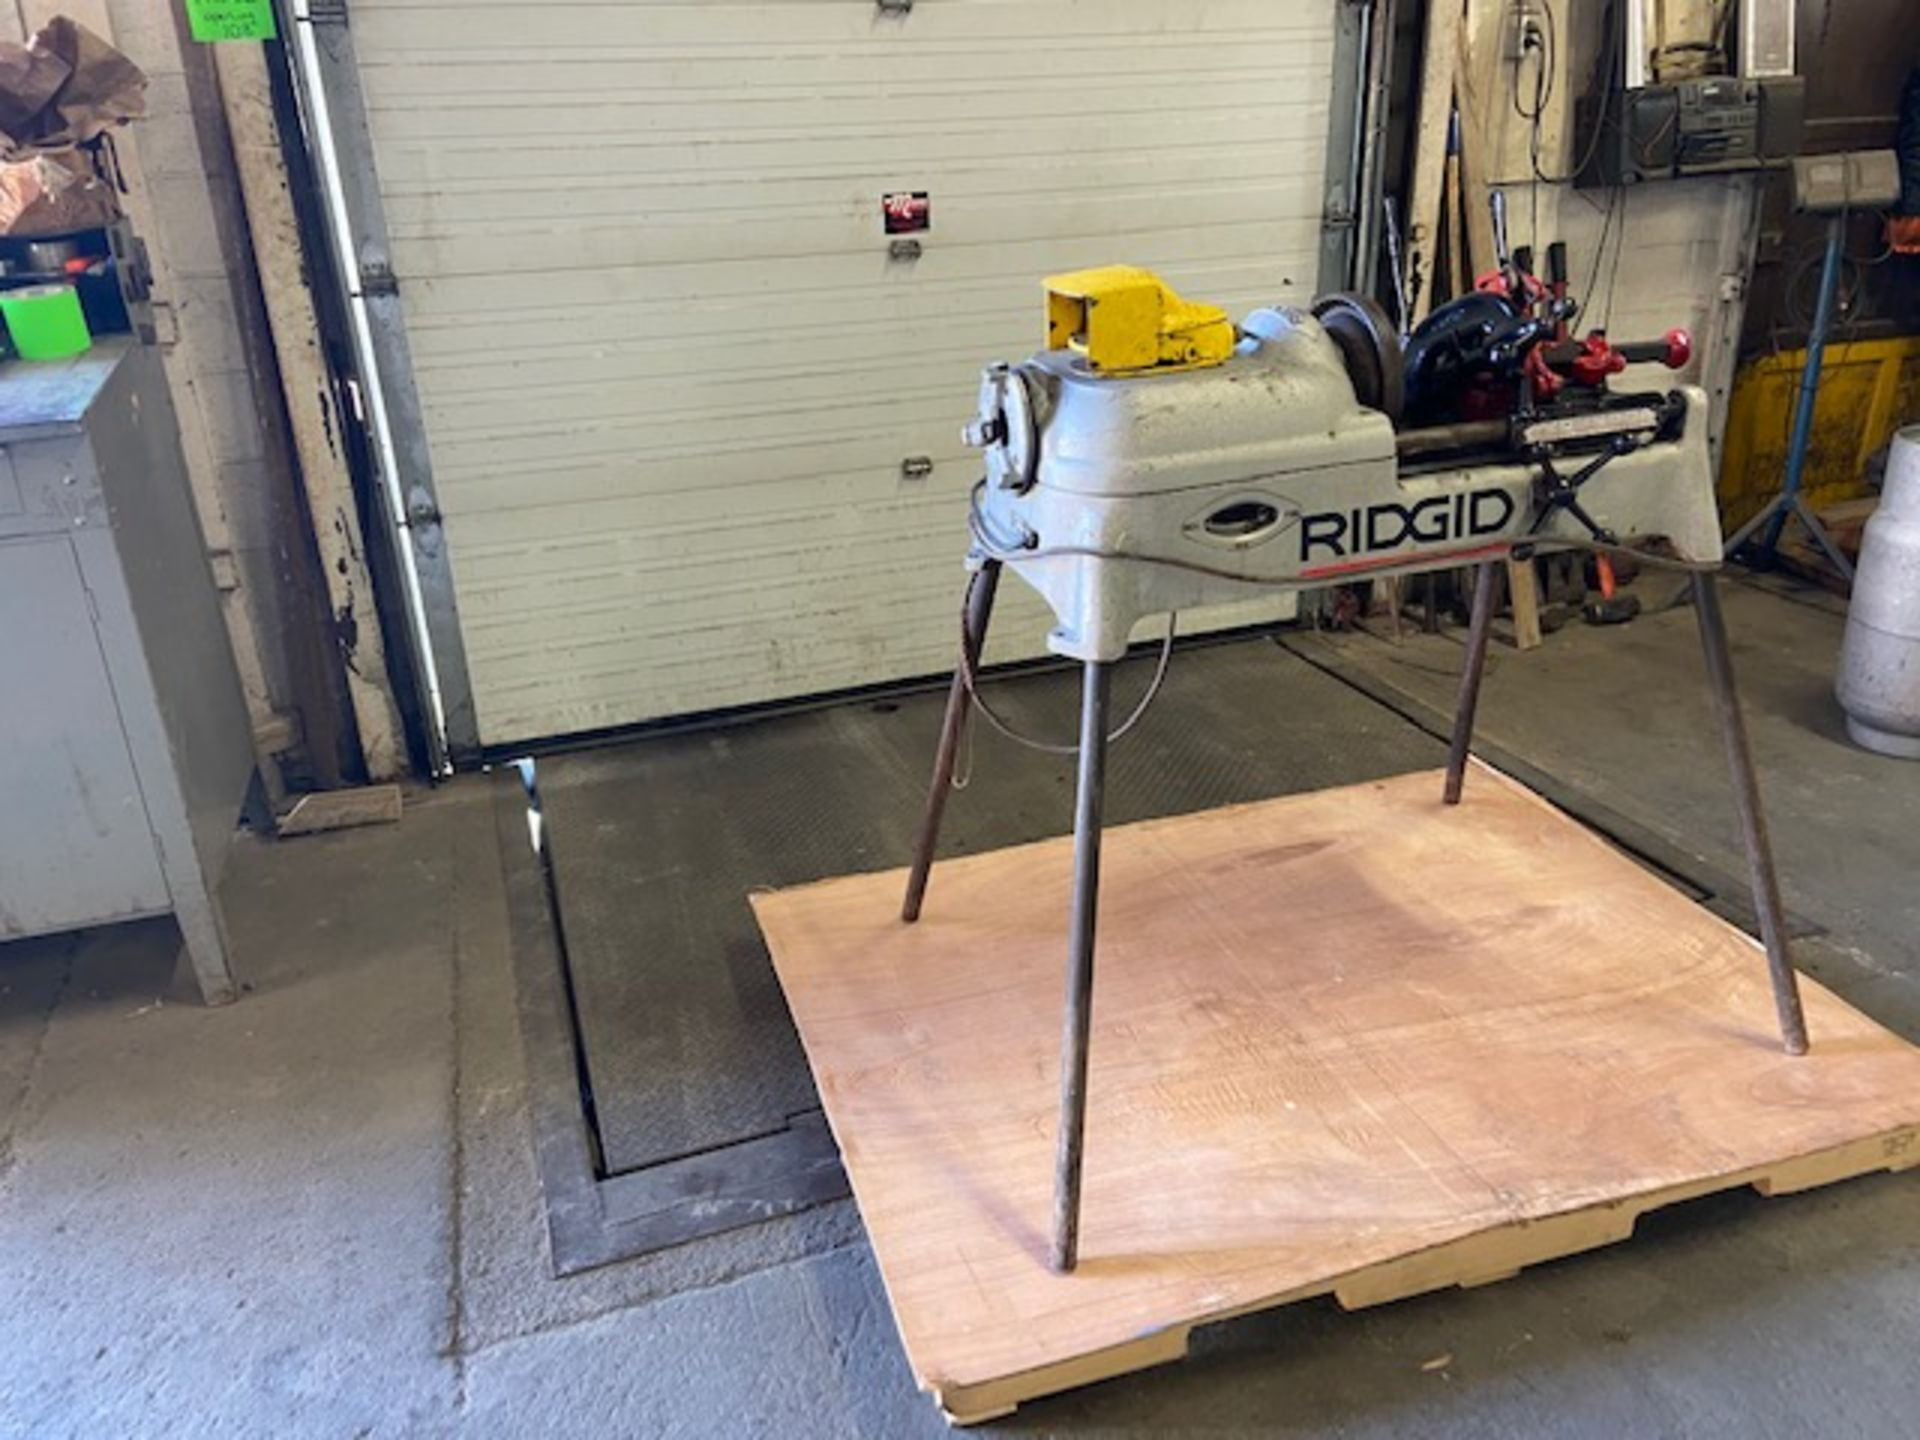 Ridgid 535 Pipe Threading Unit with Cutter and Threading Die and foot pedal Complete - Image 2 of 2